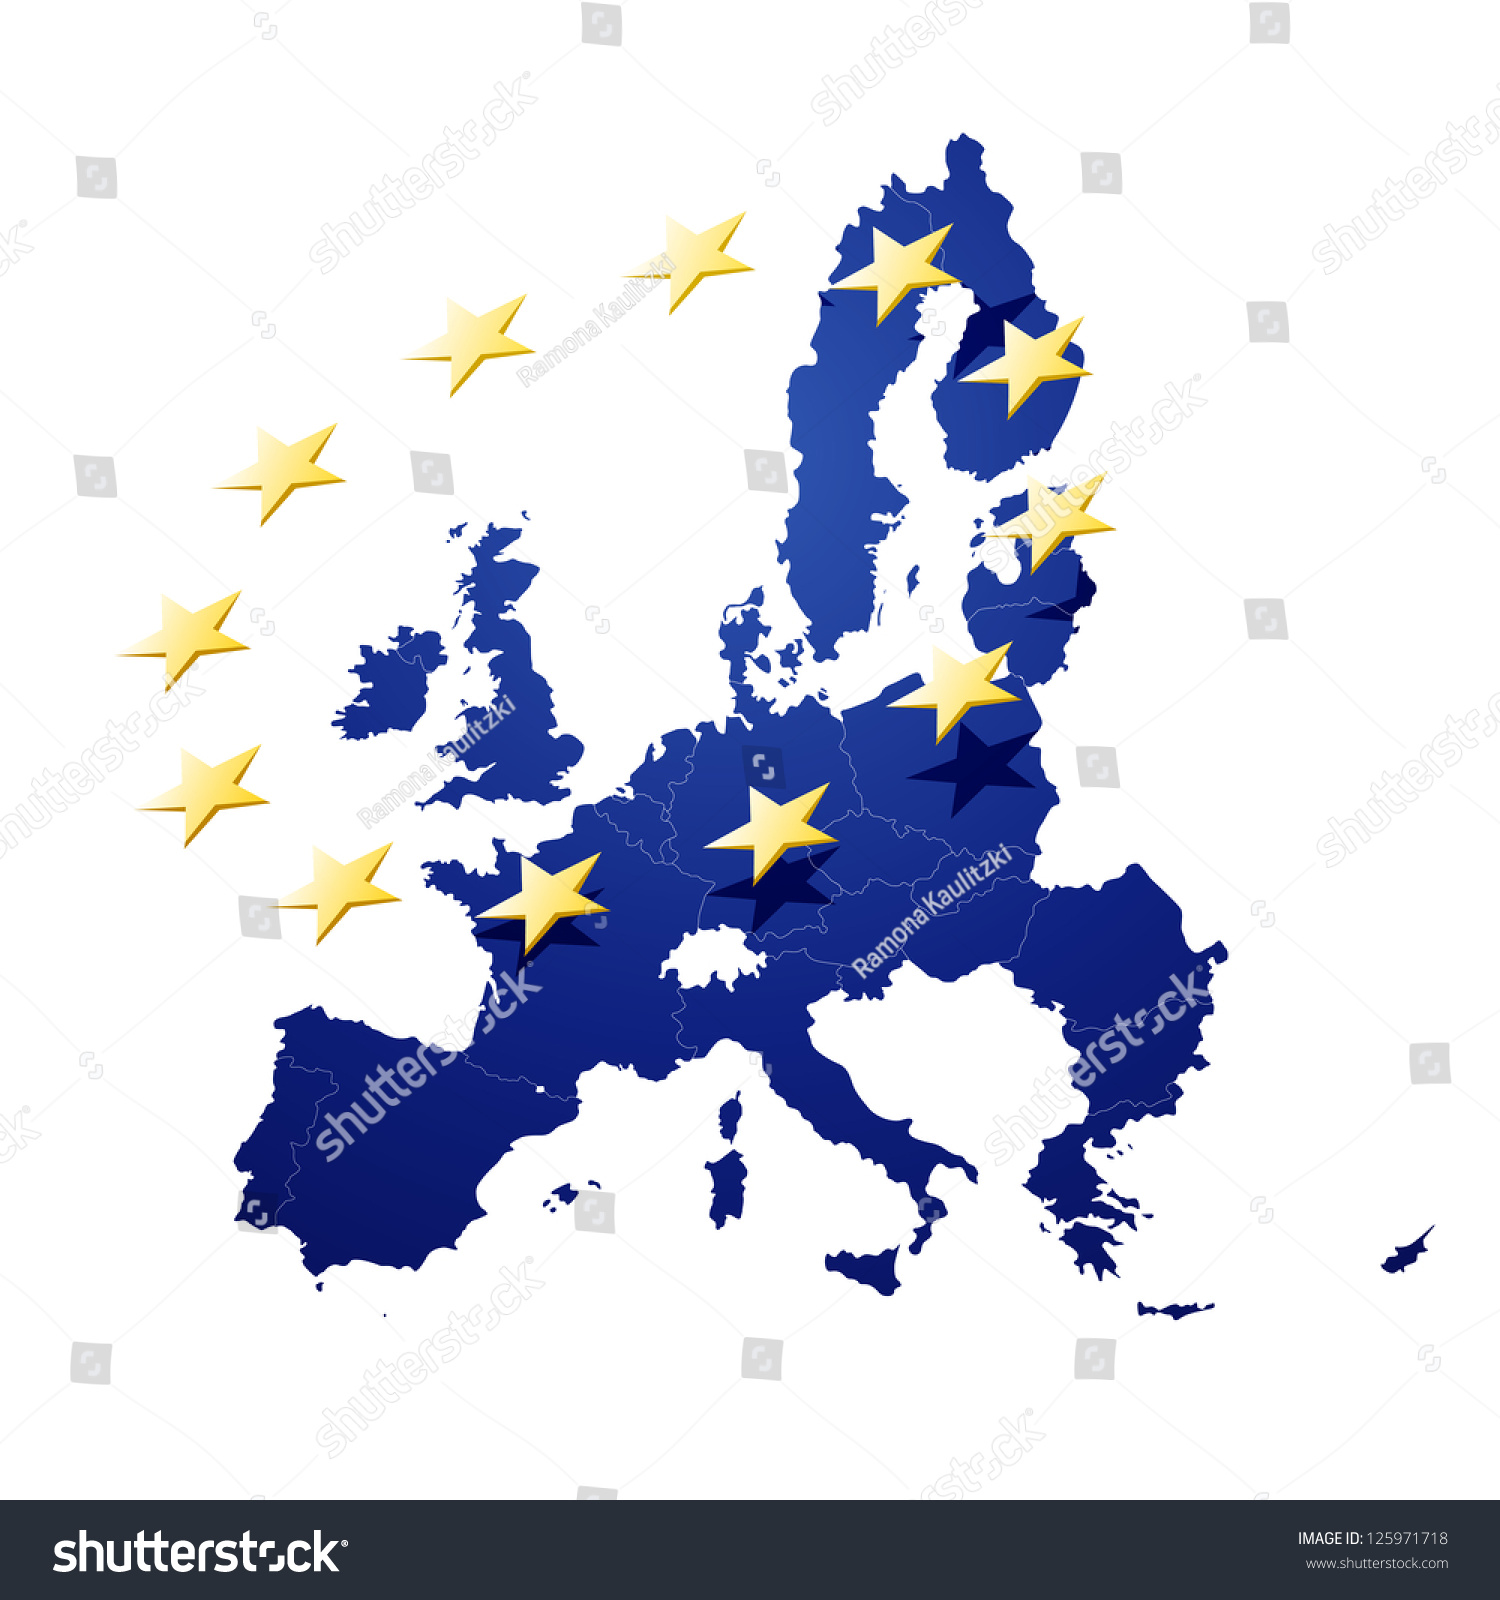 vector illustration of europe - photo #40